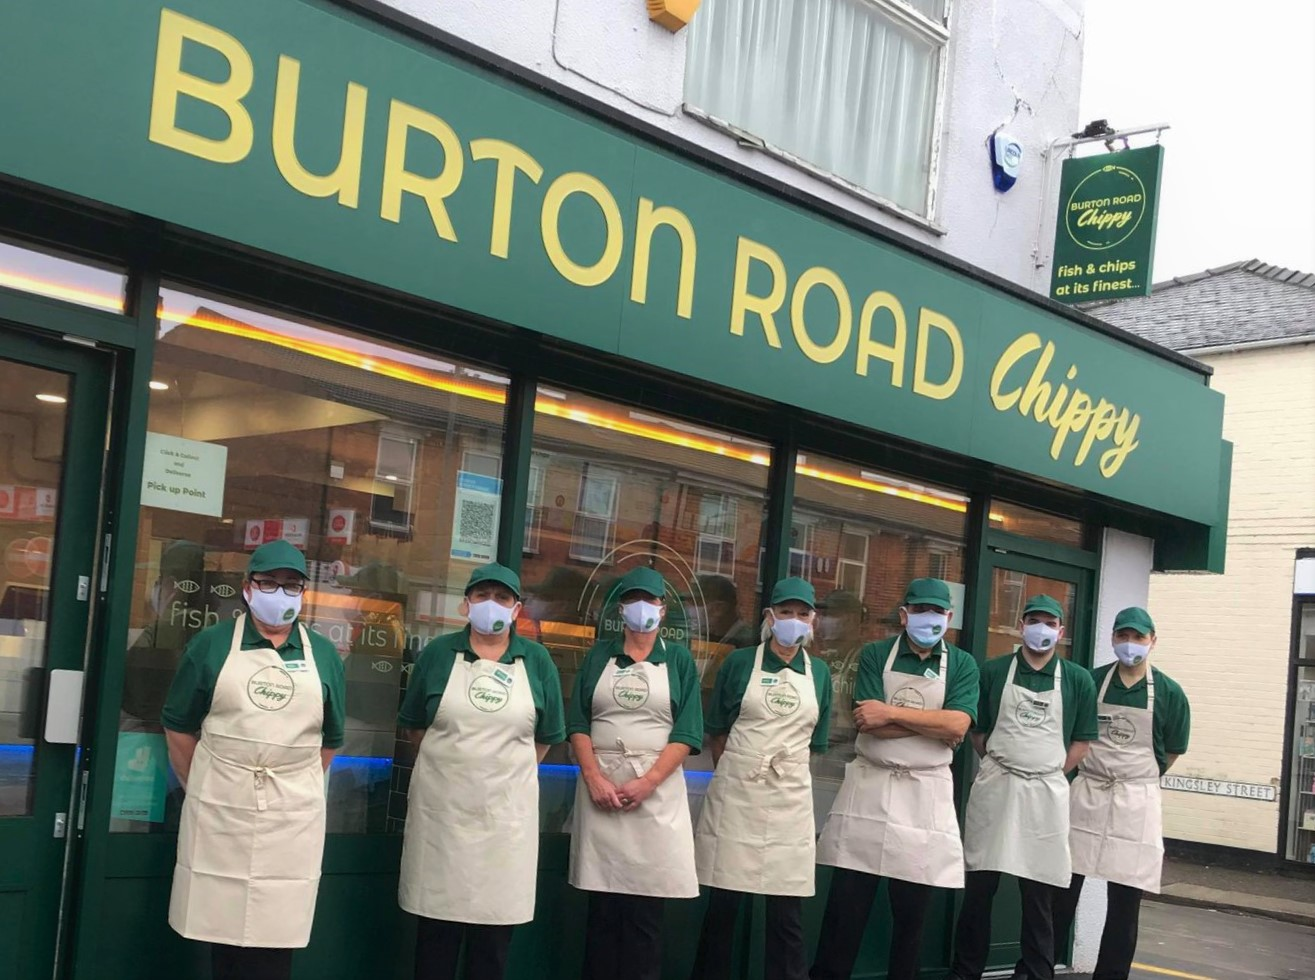 outside the new Burton road chippy in Lincoln.